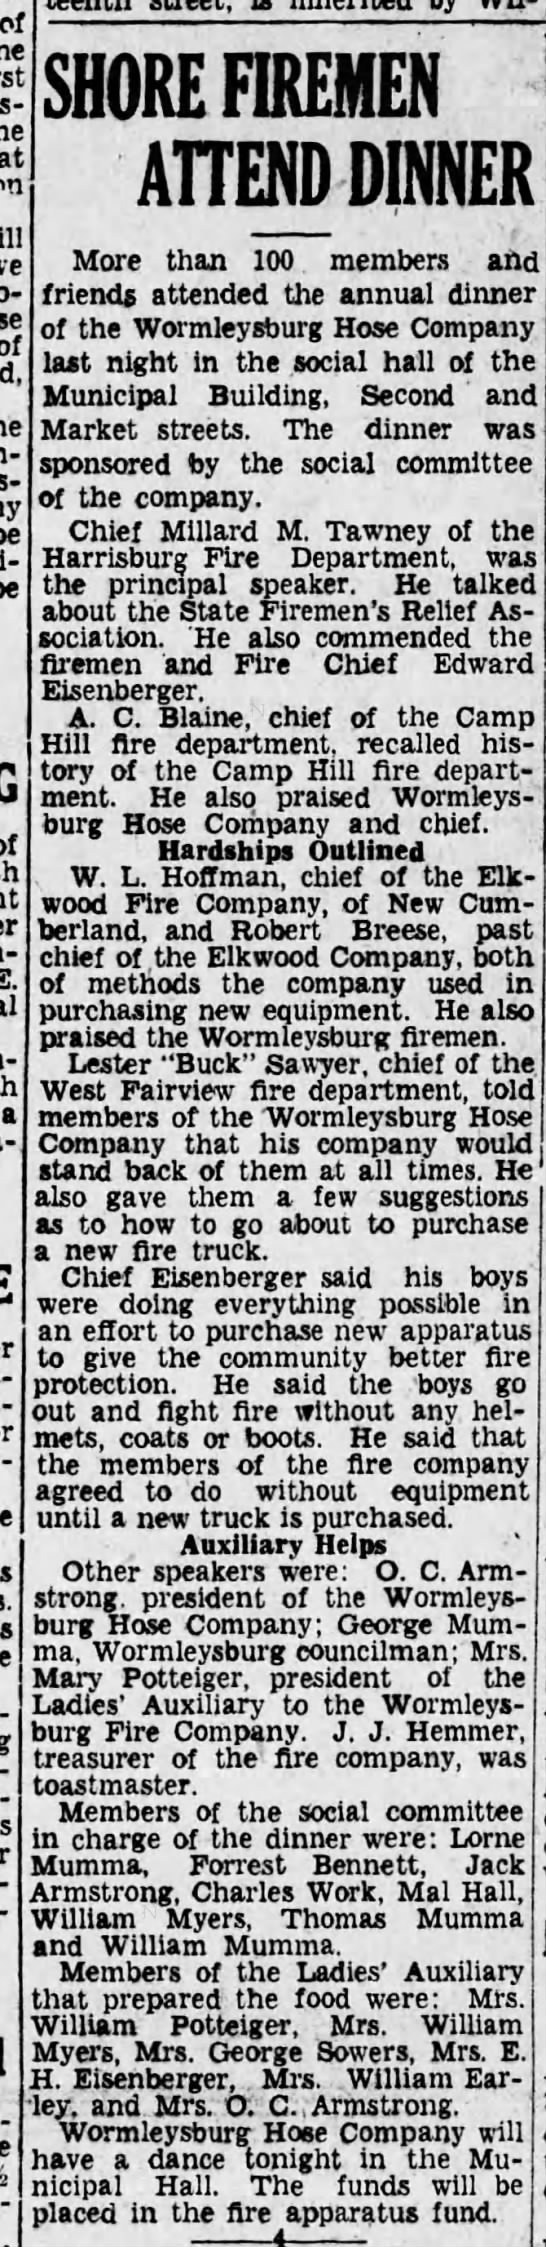 Worm 33-1-24 banquet - of of - - be - of E. a - SHORE FIREMEN ATTEND...